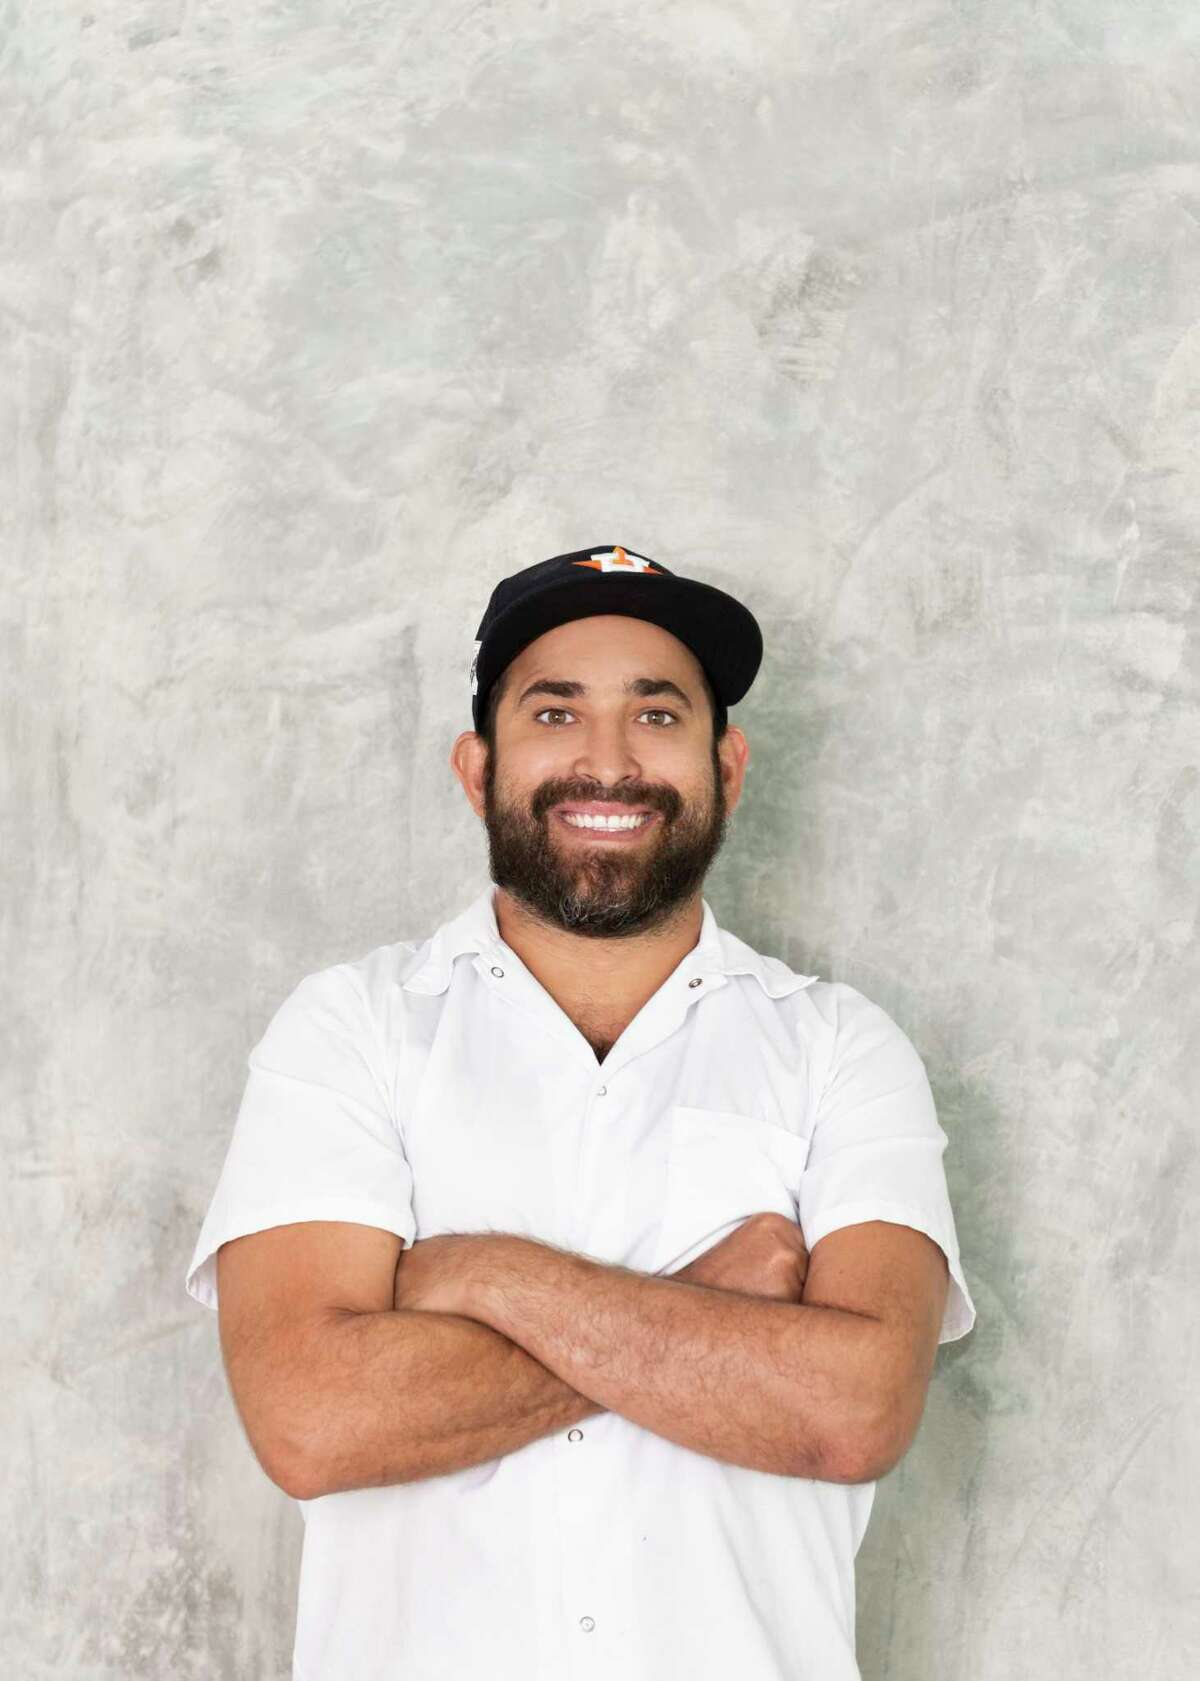 Lyle Bento, formerly with Underbelly Hospitality as chef de cuisine, will become the culinary director for Sambrooks Management Company overseeing Star Fish, Lee's Fried Chicken & Donuts, Pi Pizza and the Pit Room.